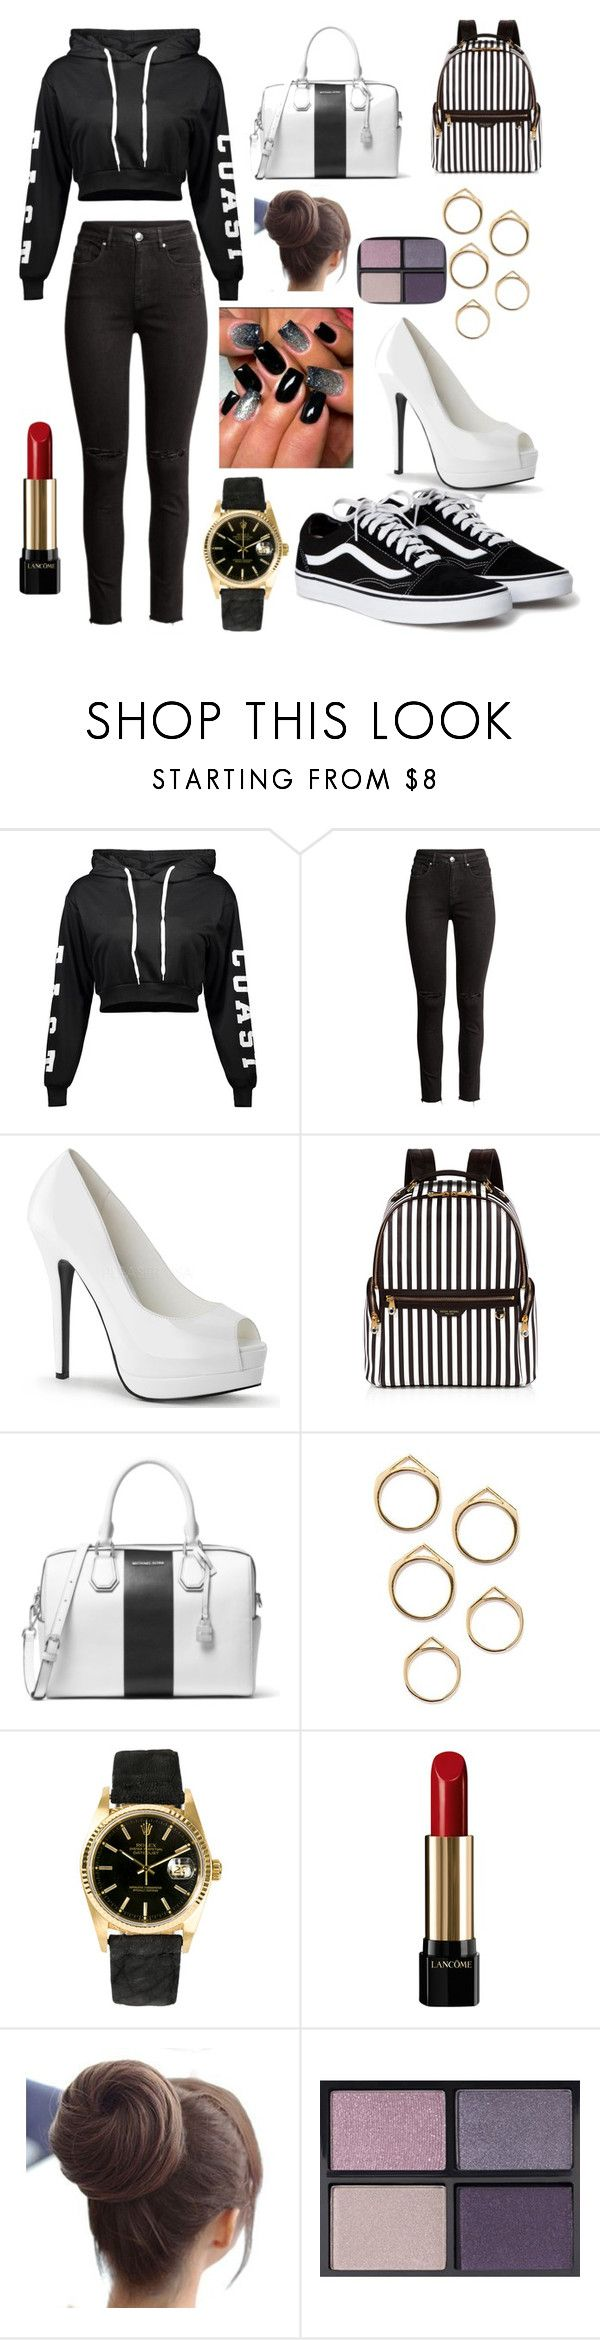 """Teen or young adult ur choice"" by kiaralisvasquez ❤ liked on Polyvore featuring H&M, Henri Bendel, MICHAEL Michael Kors, Rolex, Lancôme and Tom Ford"